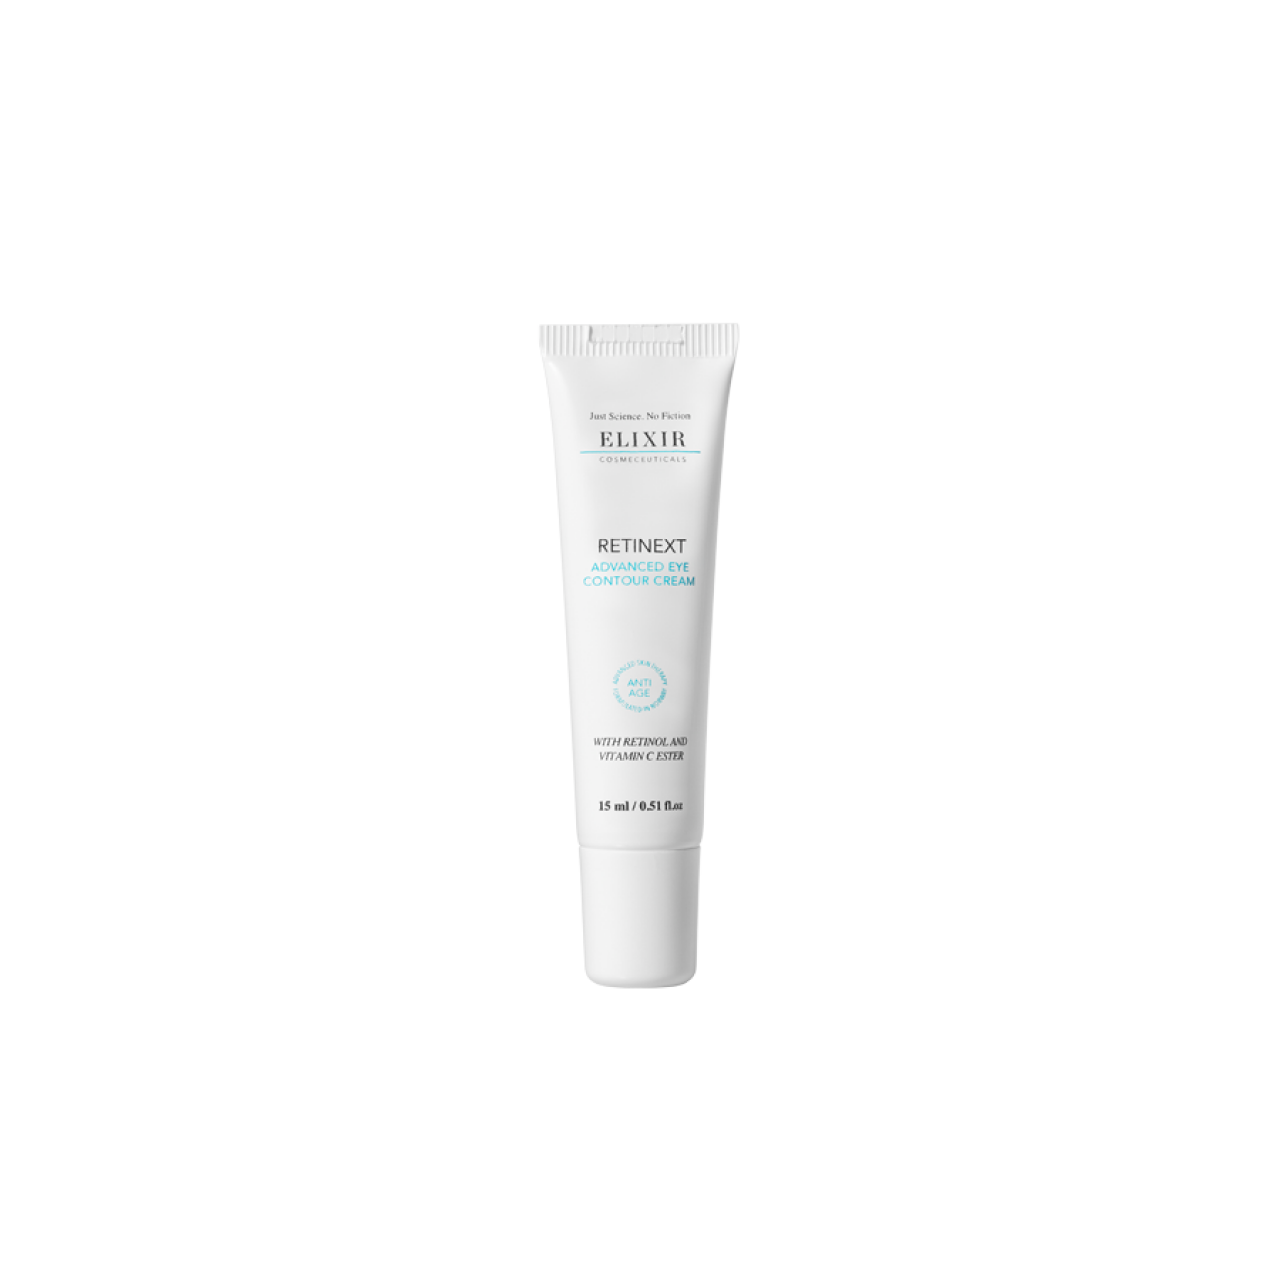 Retinext Eye Contour Cream